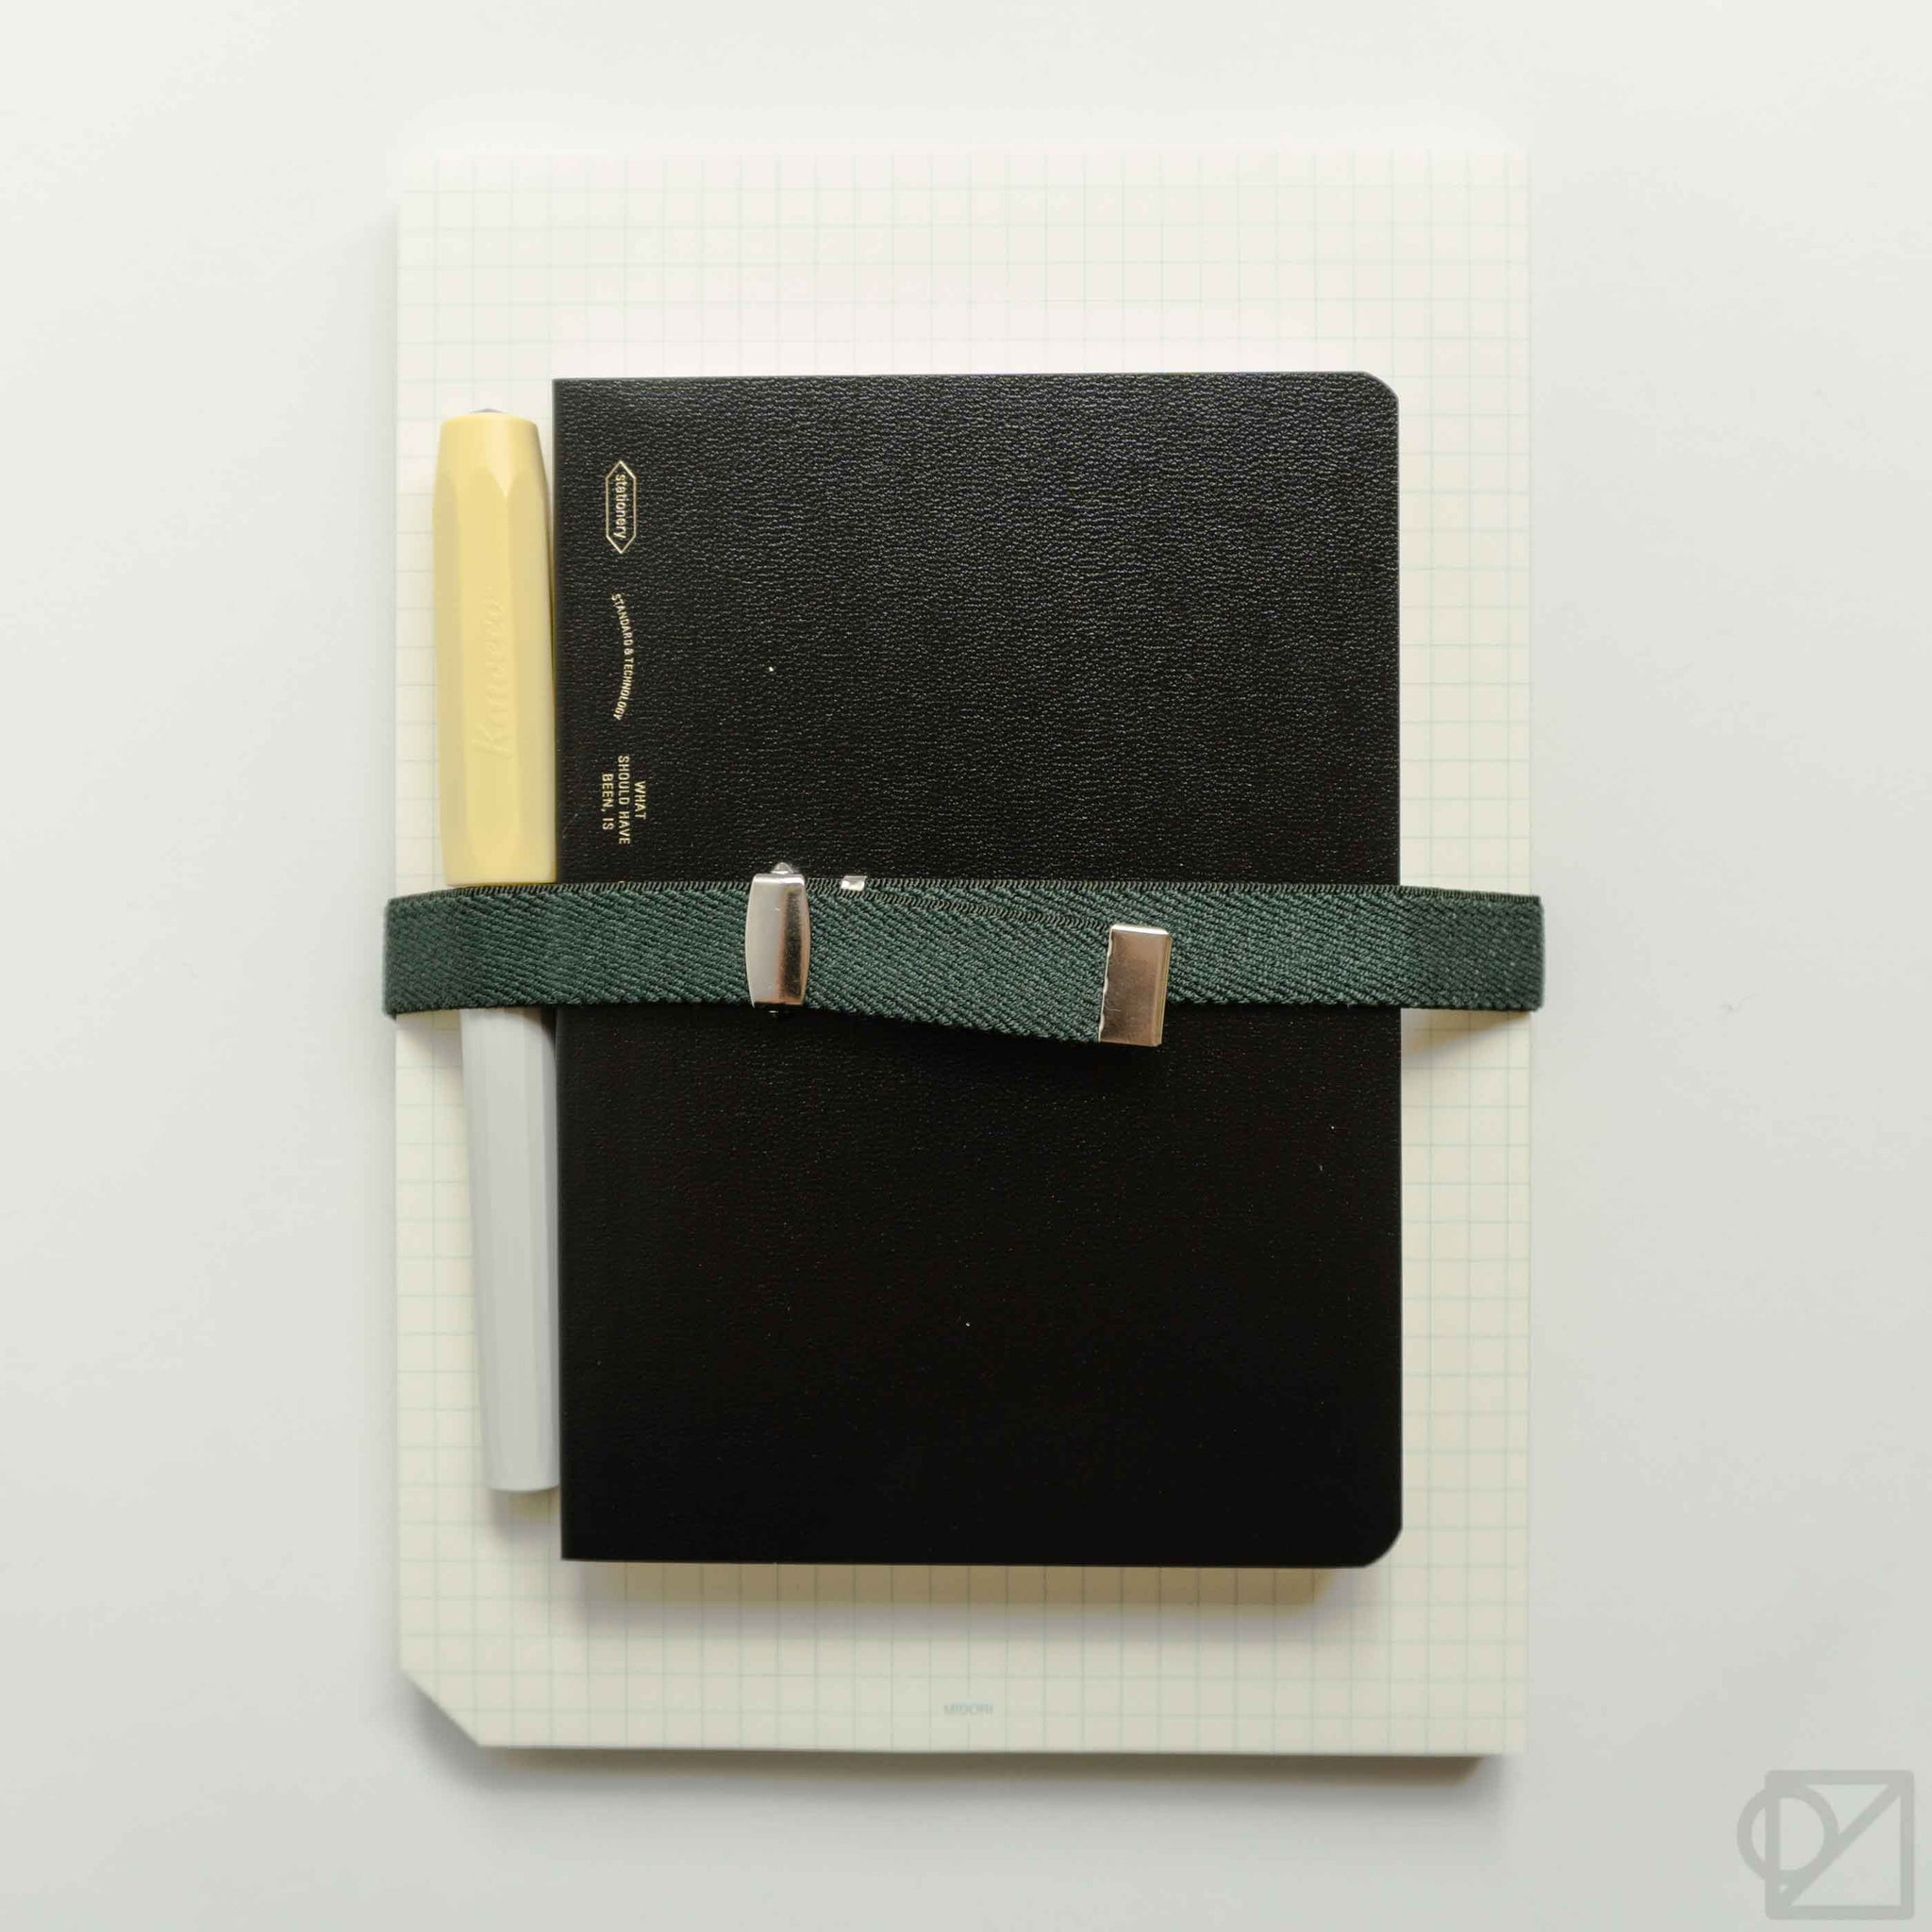 HIGHTIDE Slim Bookbands